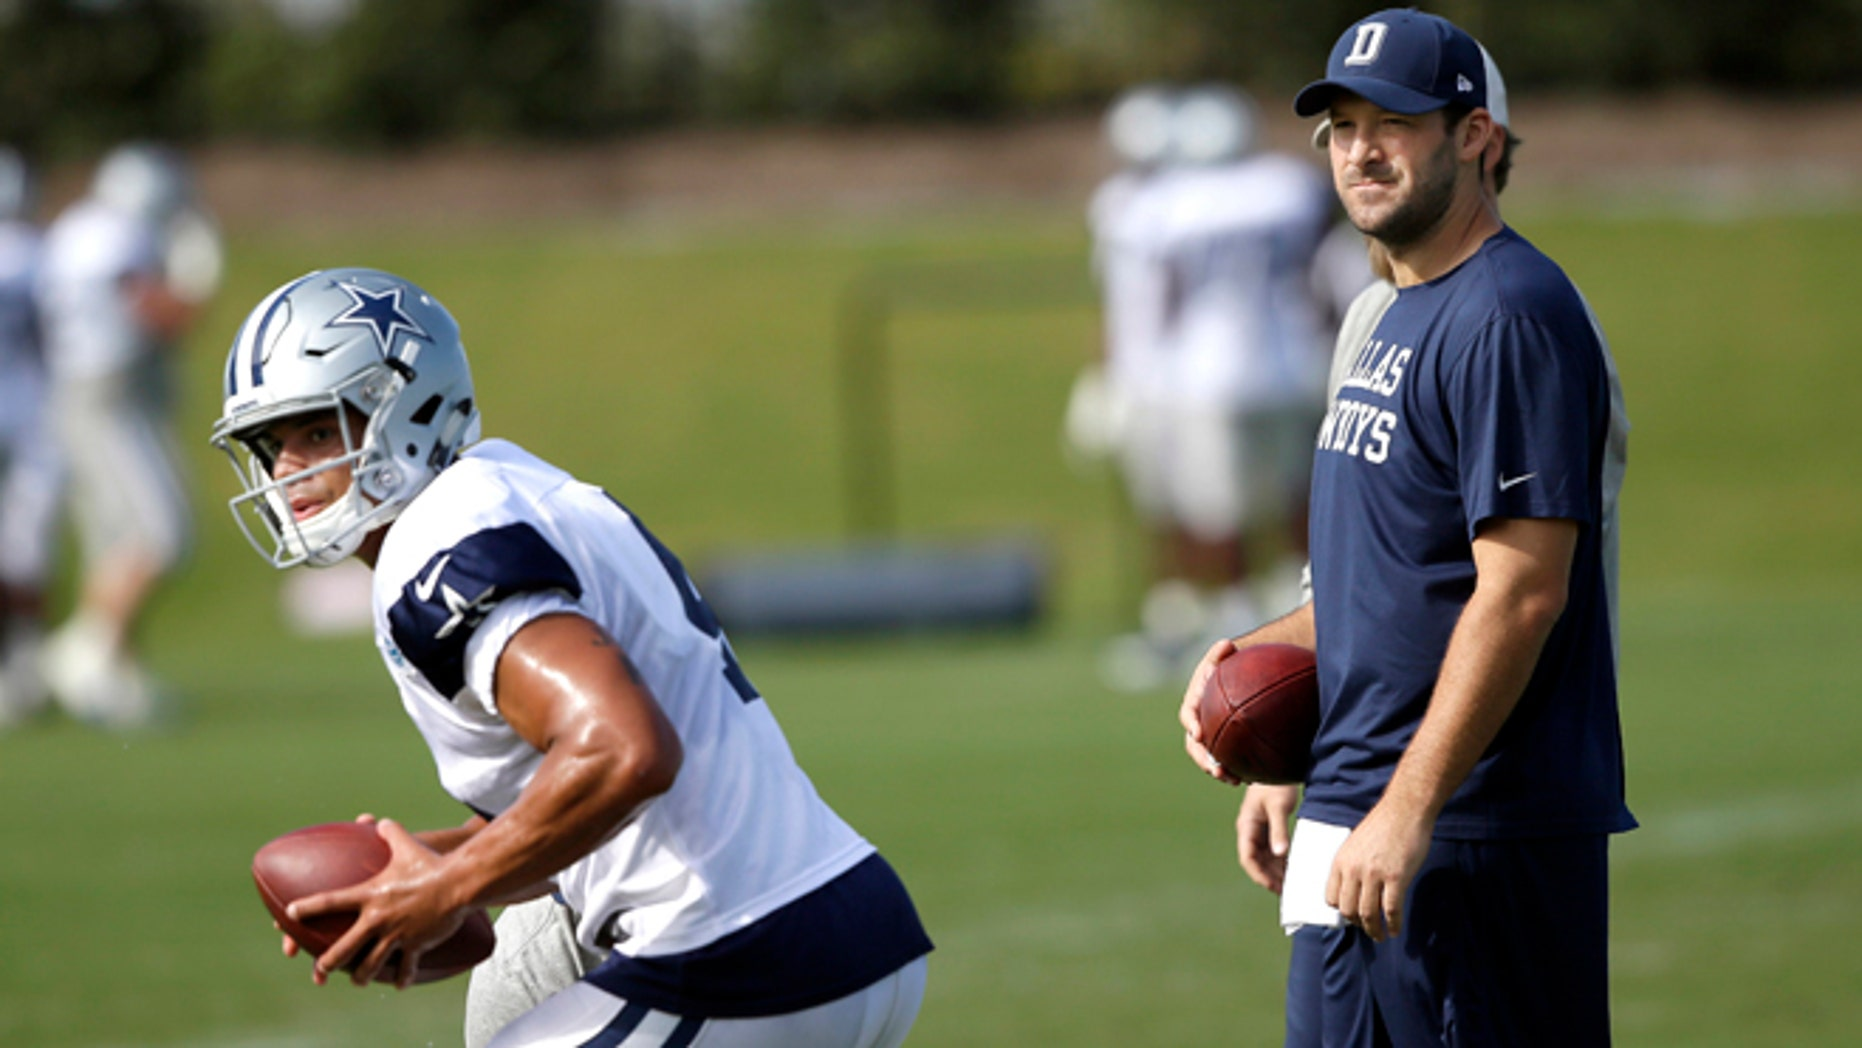 FILE - In this Oct. 26, 2016, file photo, Dallas Cowboys quarterback Tony Romo looks on as fellow quarterback Dak Prescott runs a drill during football practice at the team's practice facility in Frisco, Texas. Romo is running the scout team in practice even though Dallas' starting quarterback the past 10 years looks ready to return from a back injury. (AP Photo/LM Otero, File)